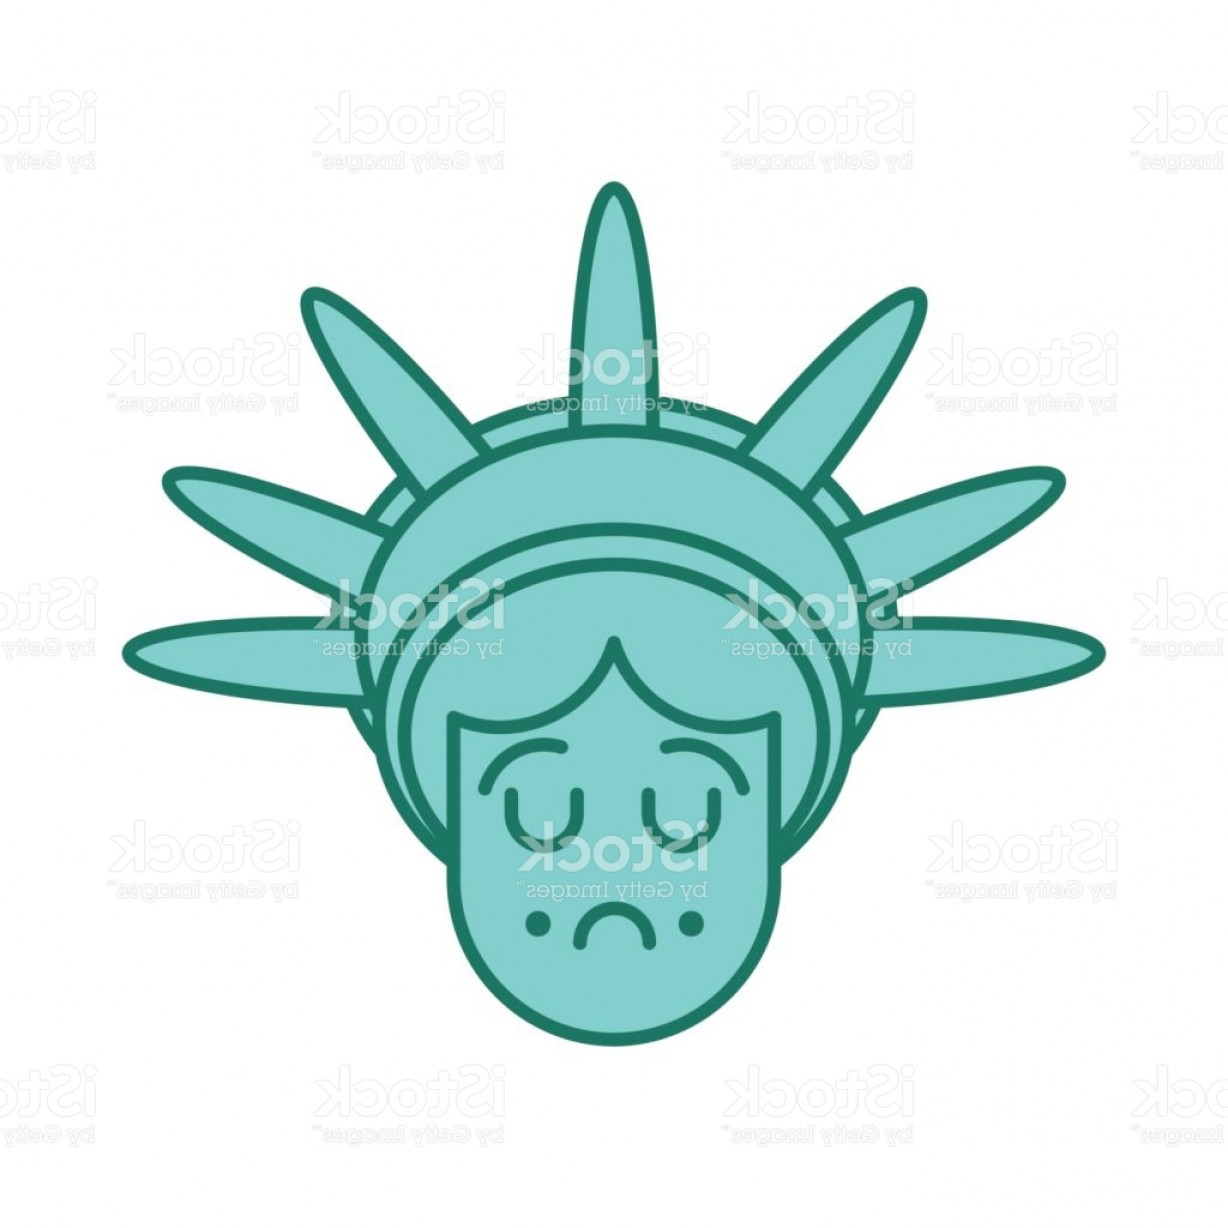 Statue Of Liberty Face Vector: Statue Of Liberty Face Emoji Sightseeing America Sad Head Of Sculpture Of United Gm